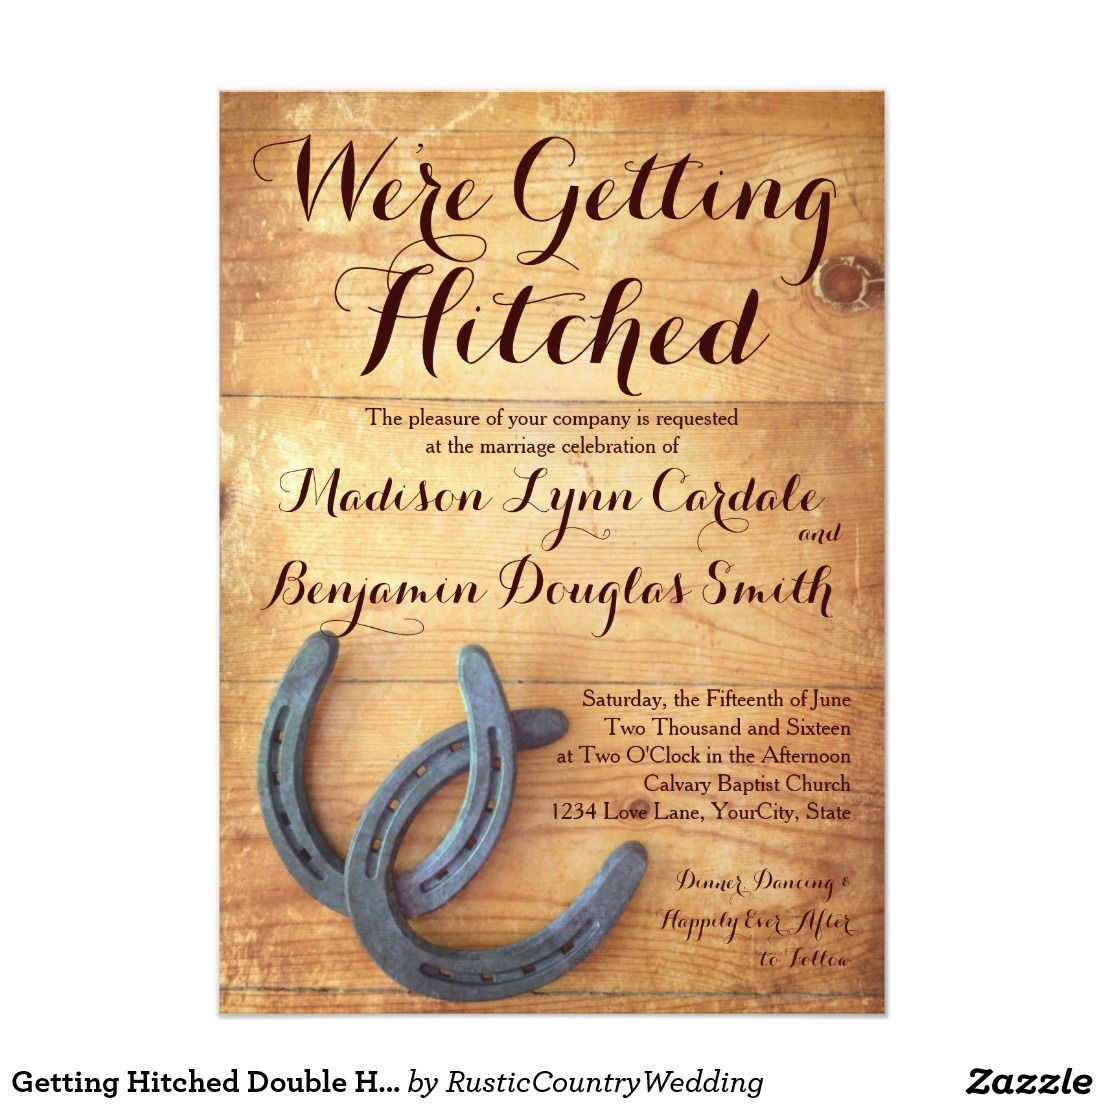 Getting Hitched Double Horseshoe Wedding Invites Wedding